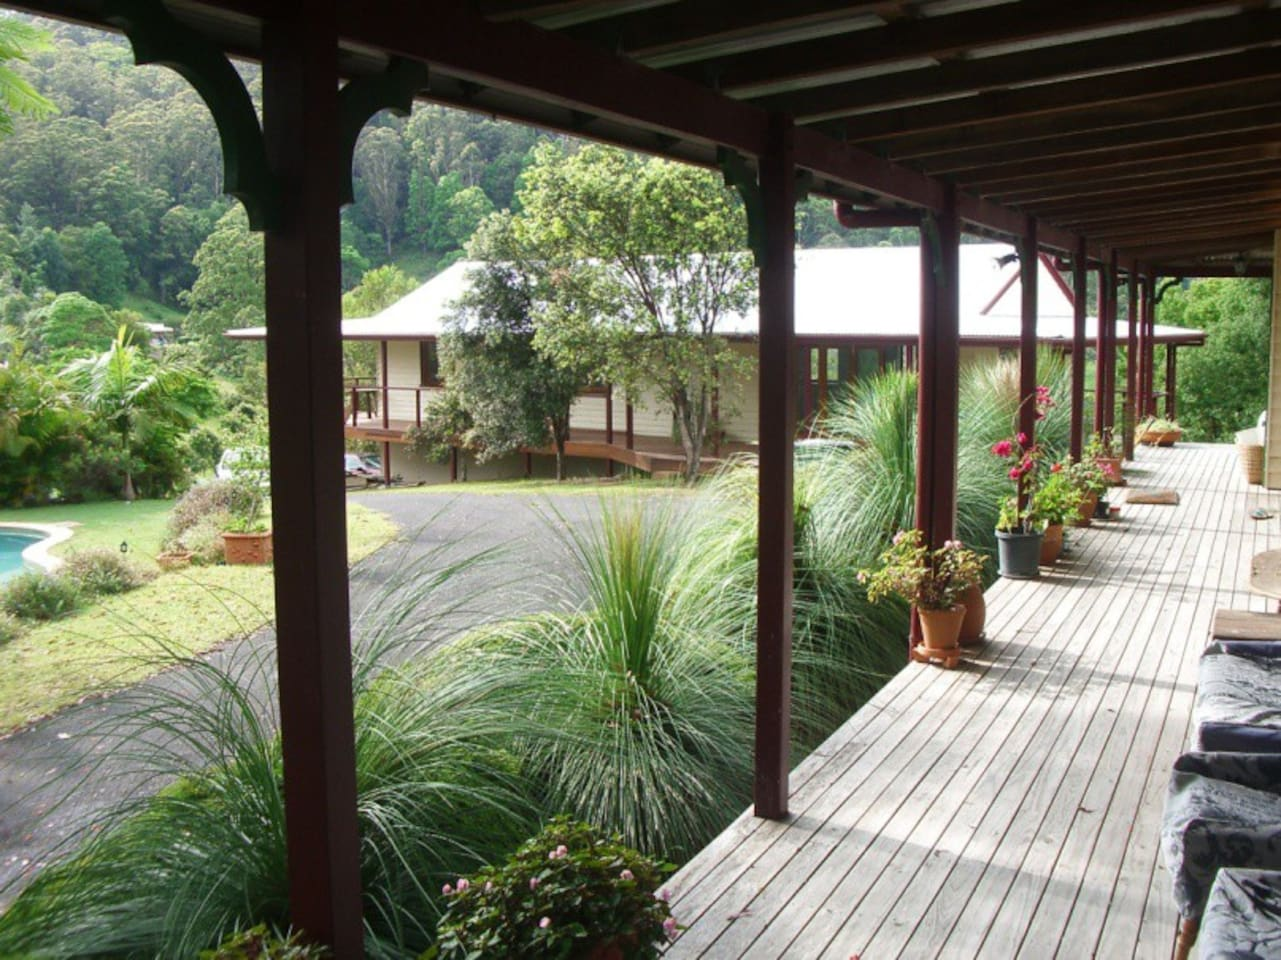 The two buildings on the property. Barracks is in the background. Verandah of main house in the foreground.